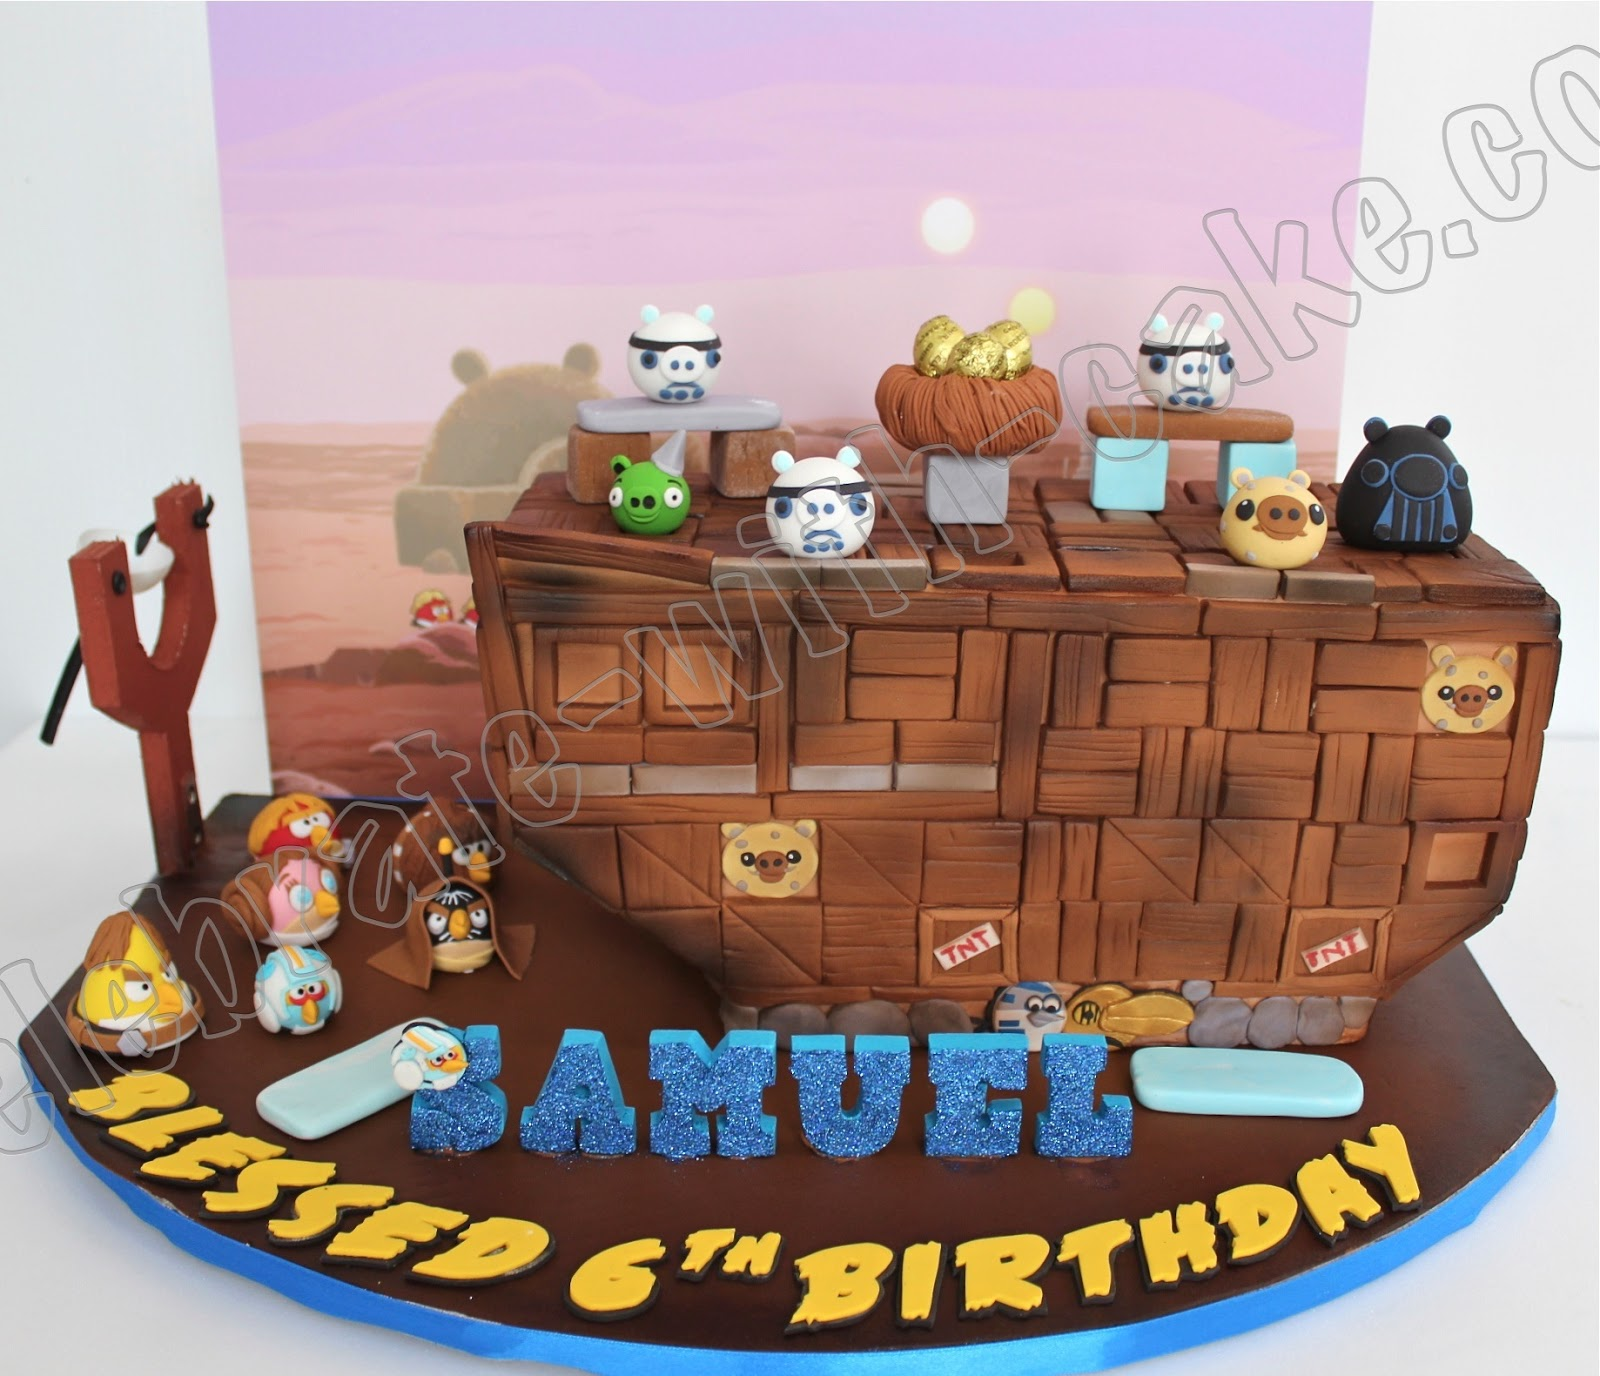 Playable Angry Birds Star Wars Cake